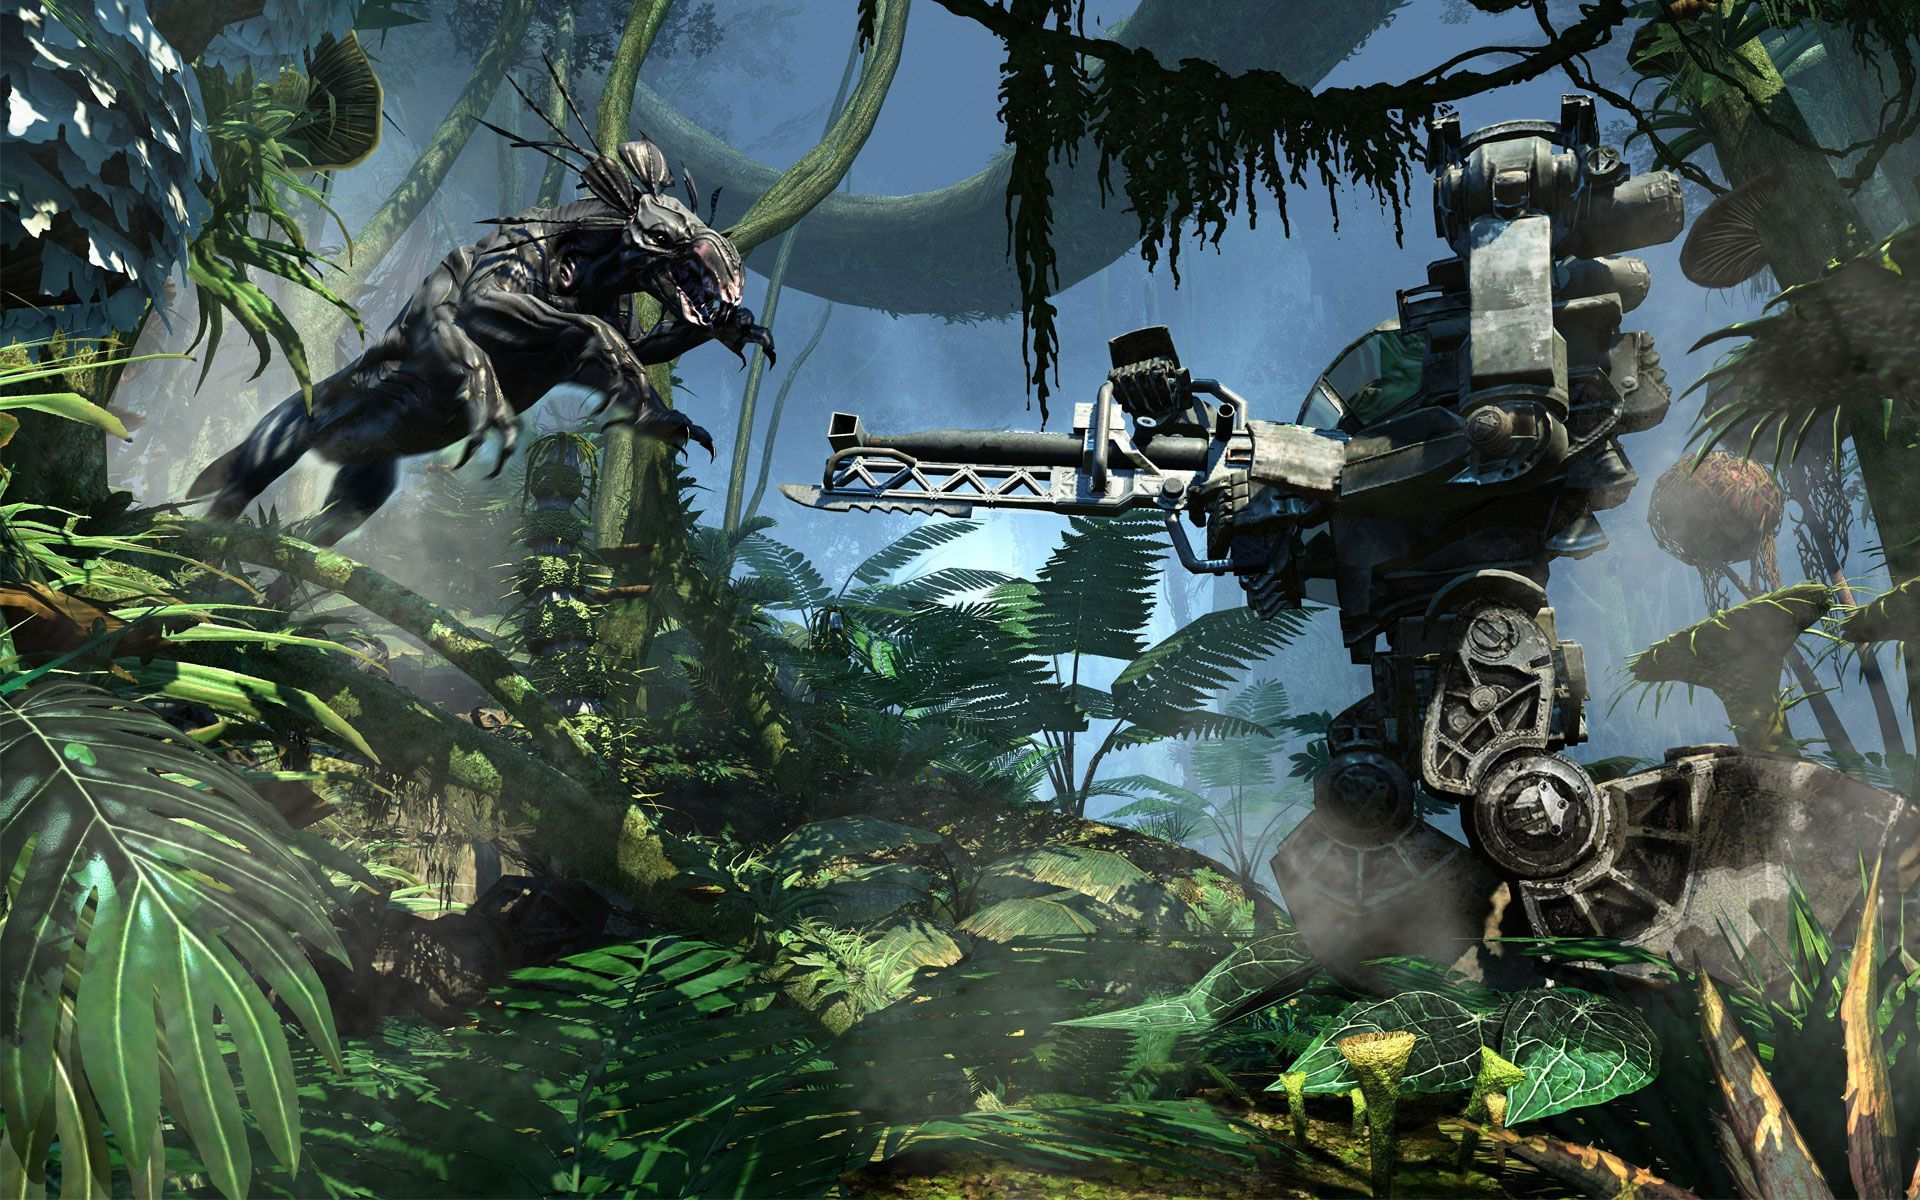 James Cameron S Avatar The Game : James cameron s avatar the game « mundo del software web